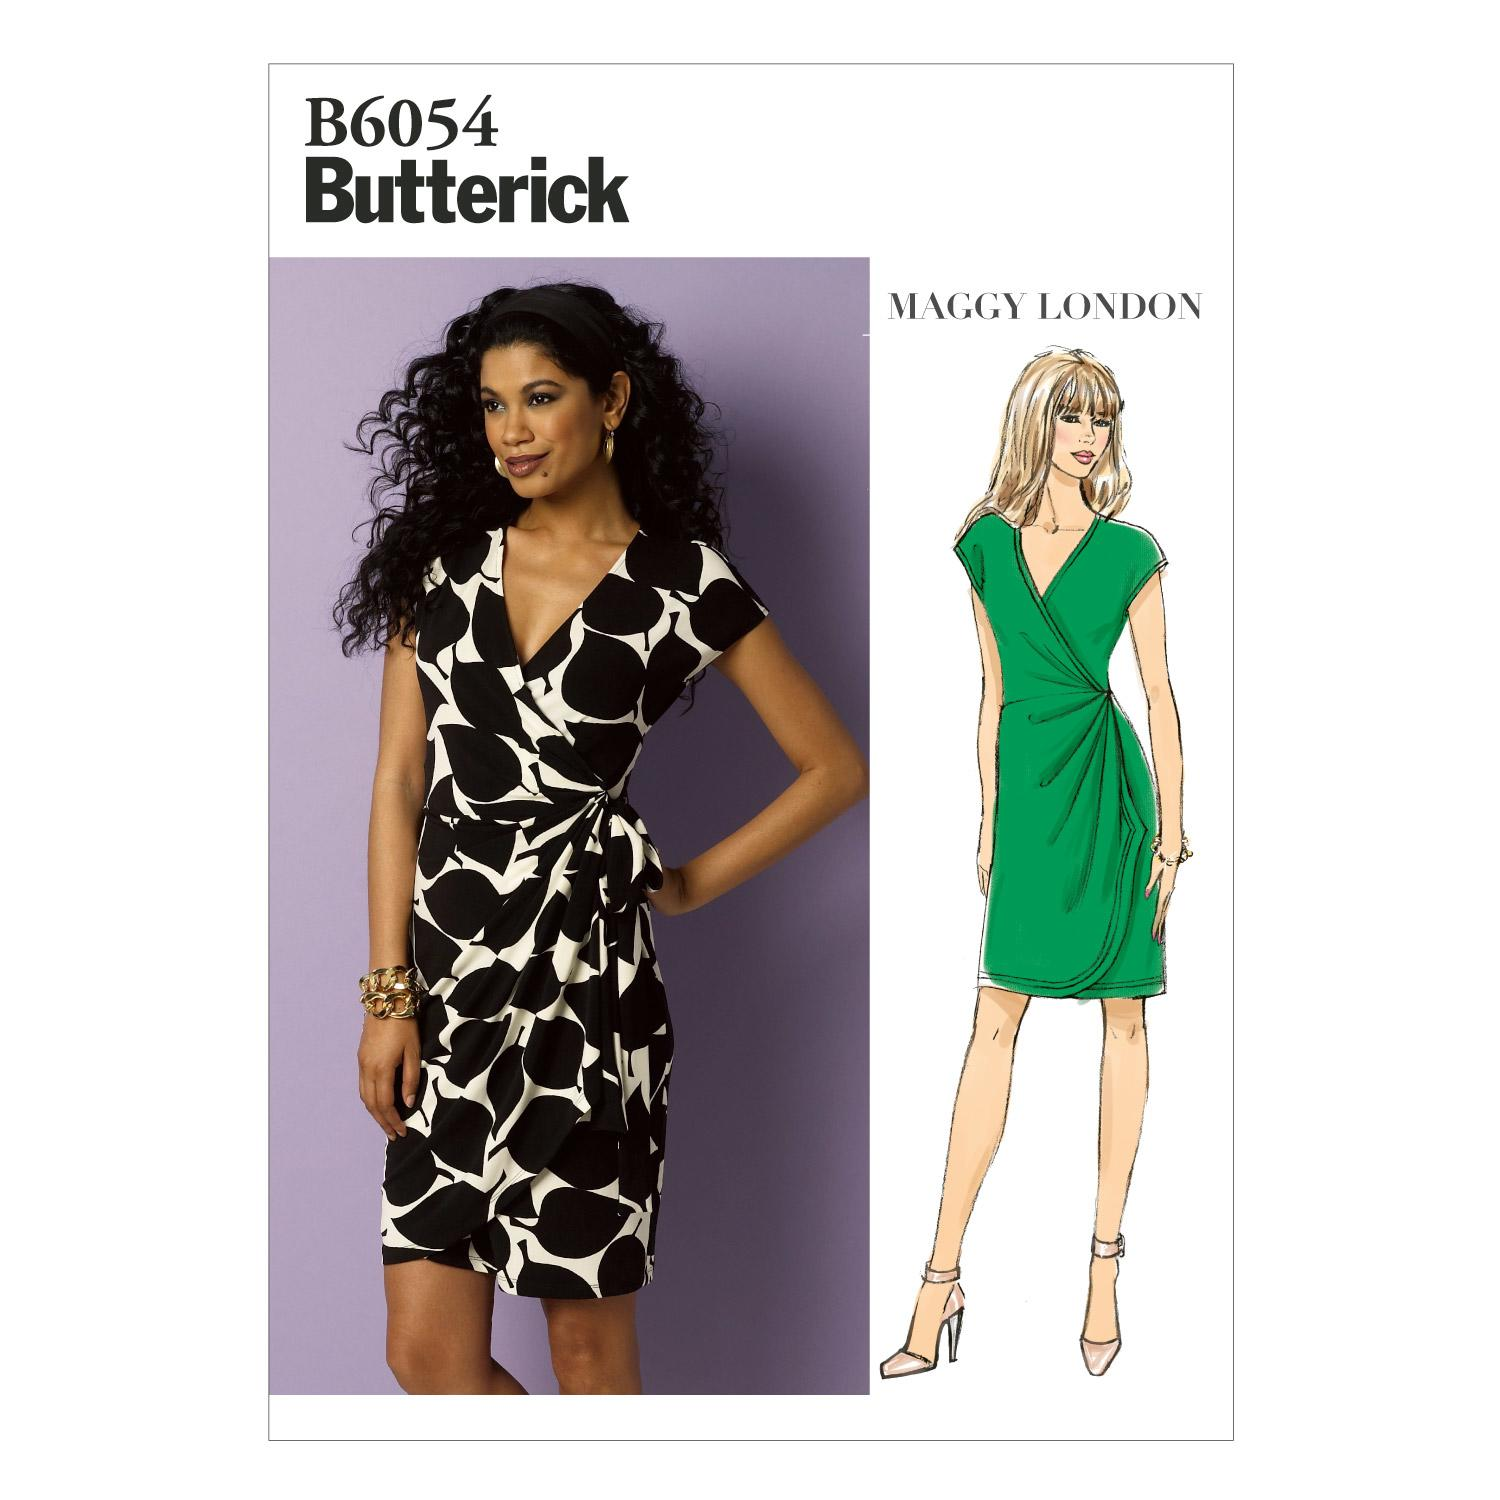 Butterick B6054 Misses' Dress